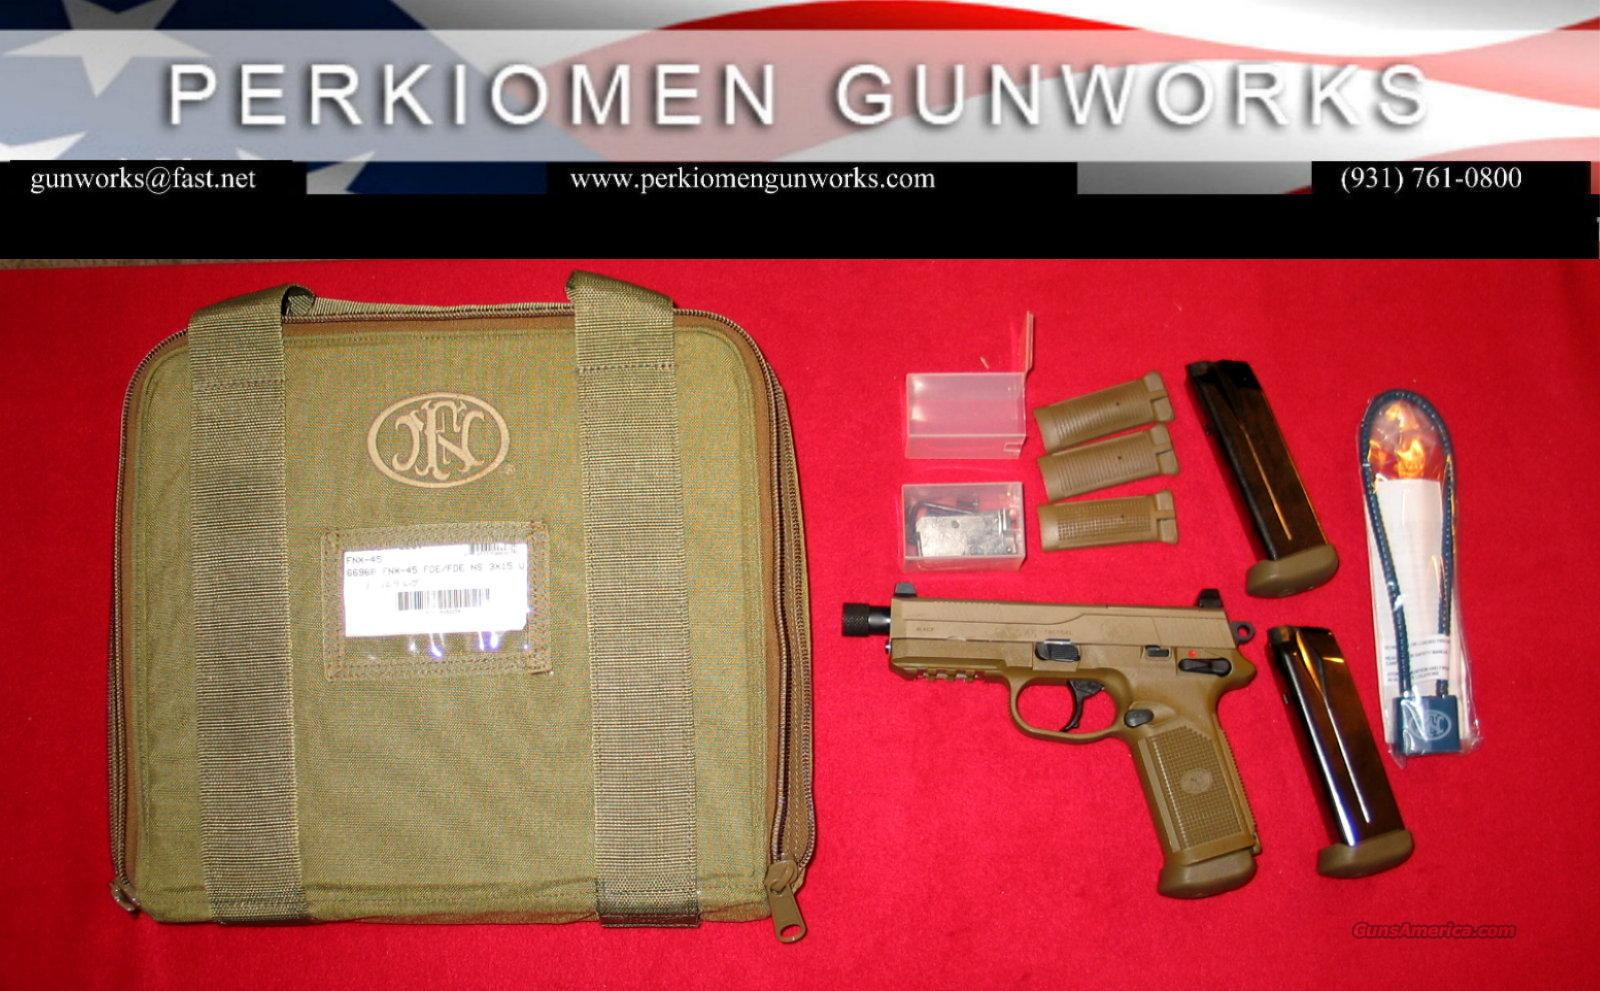 FNX-45 Tactical / Flat Dark Earth, 45acp, New w/case  Guns > Pistols > FNH - Fabrique Nationale (FN) Pistols > FNP